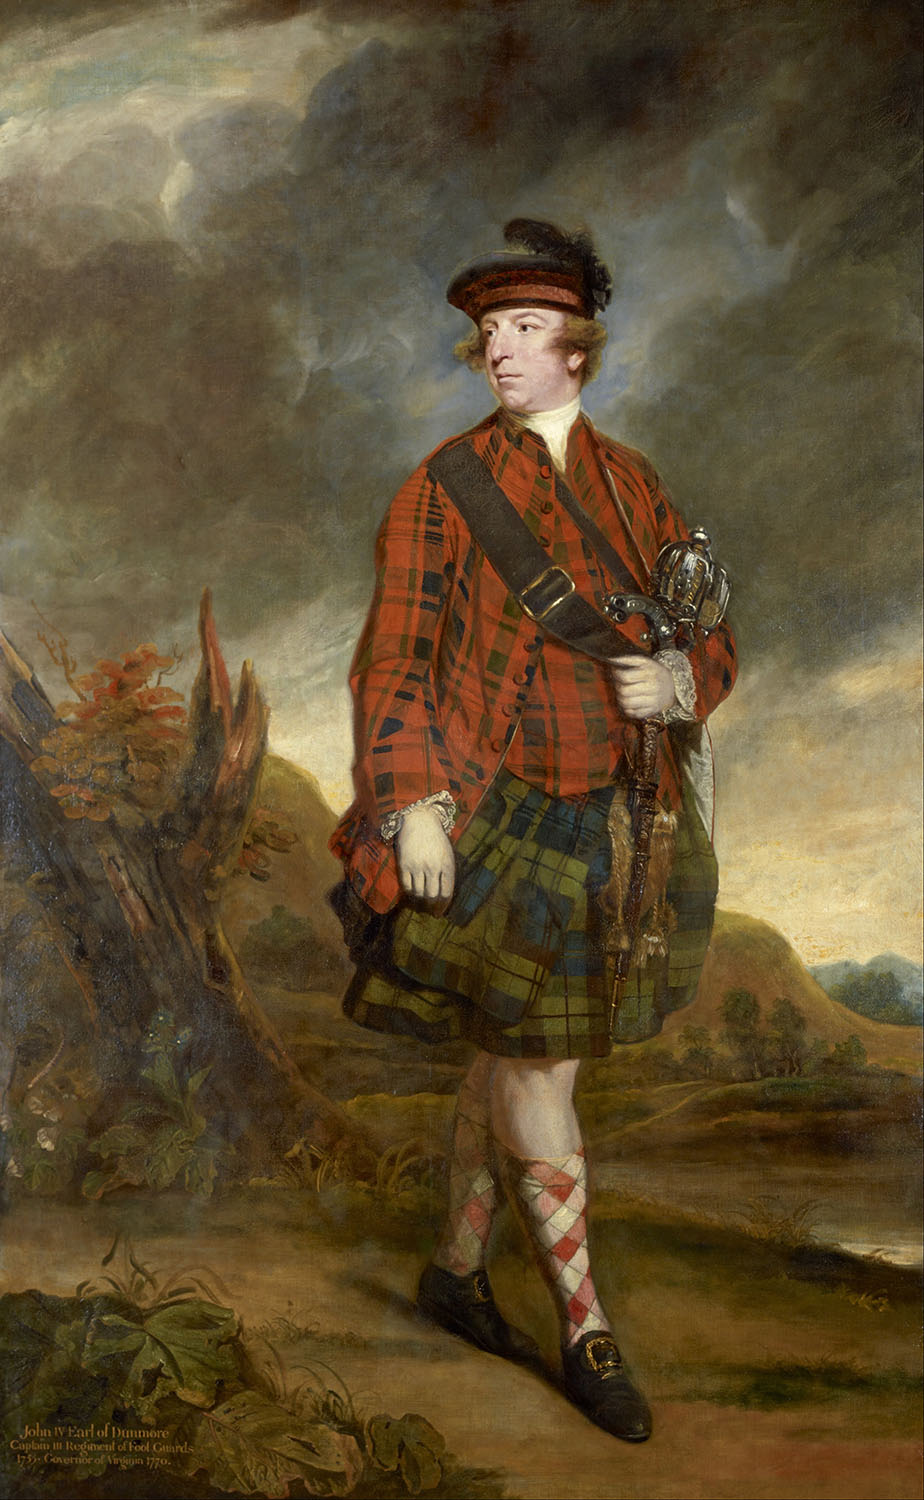 Courtesy of the National Galleries of Scotland.